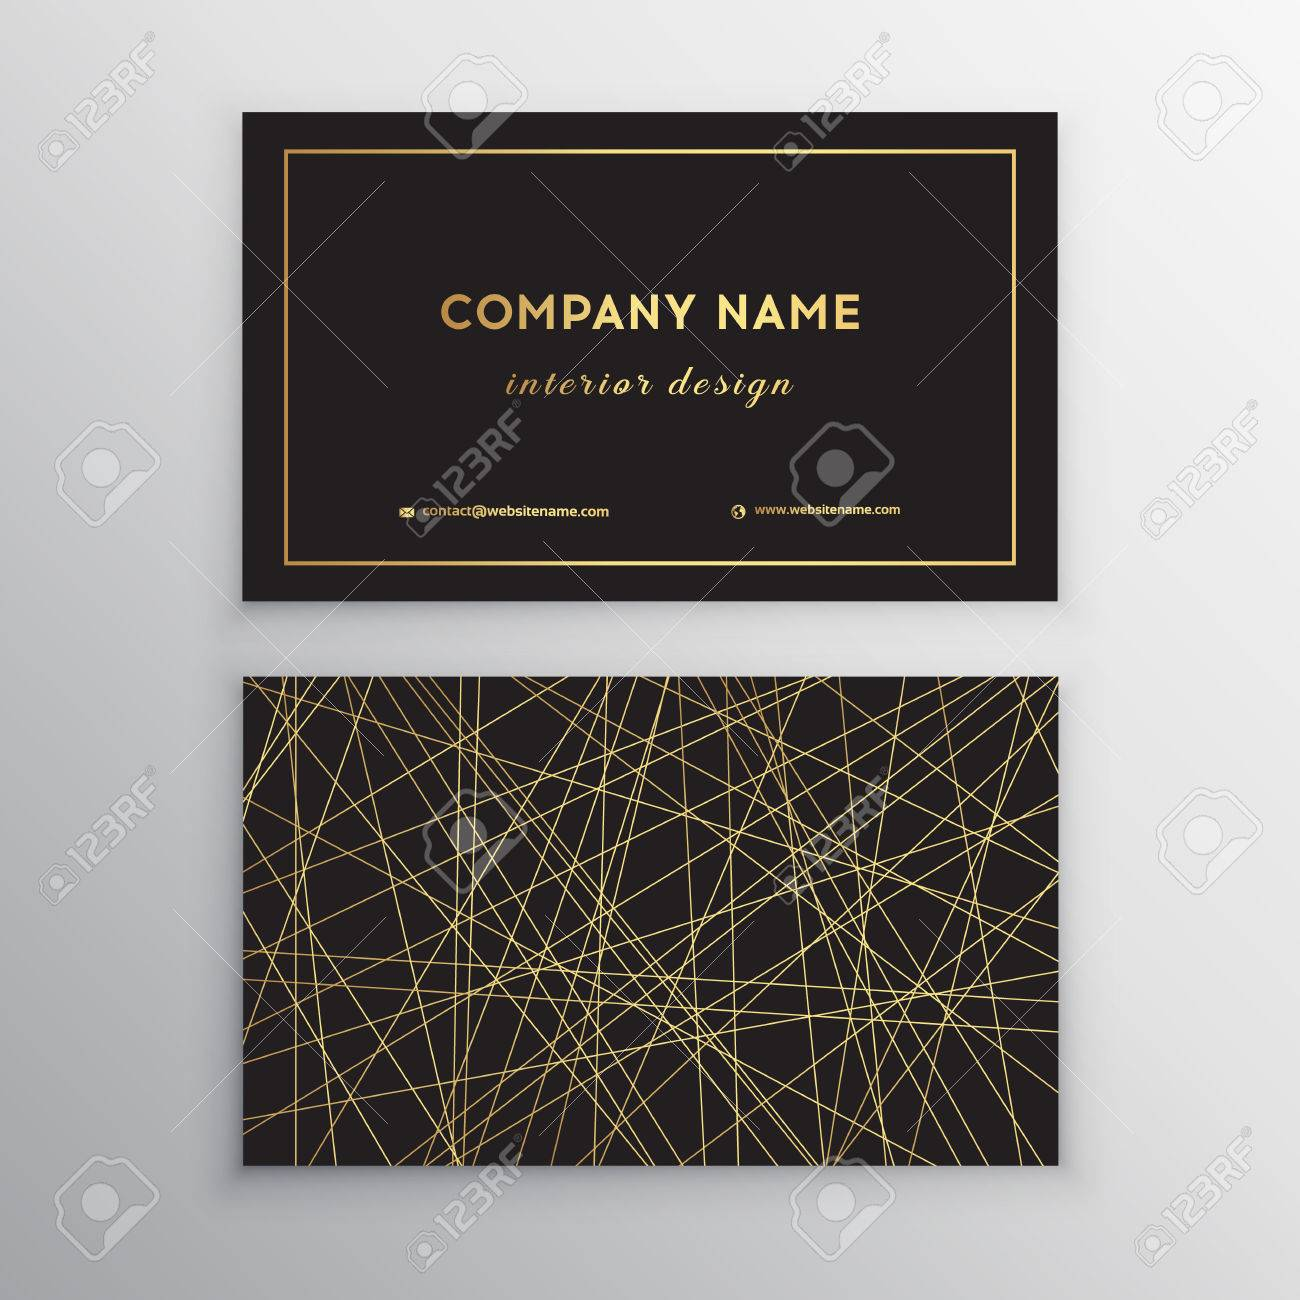 Luxury Business Card. Gold And Black Horizontal Business Card ...